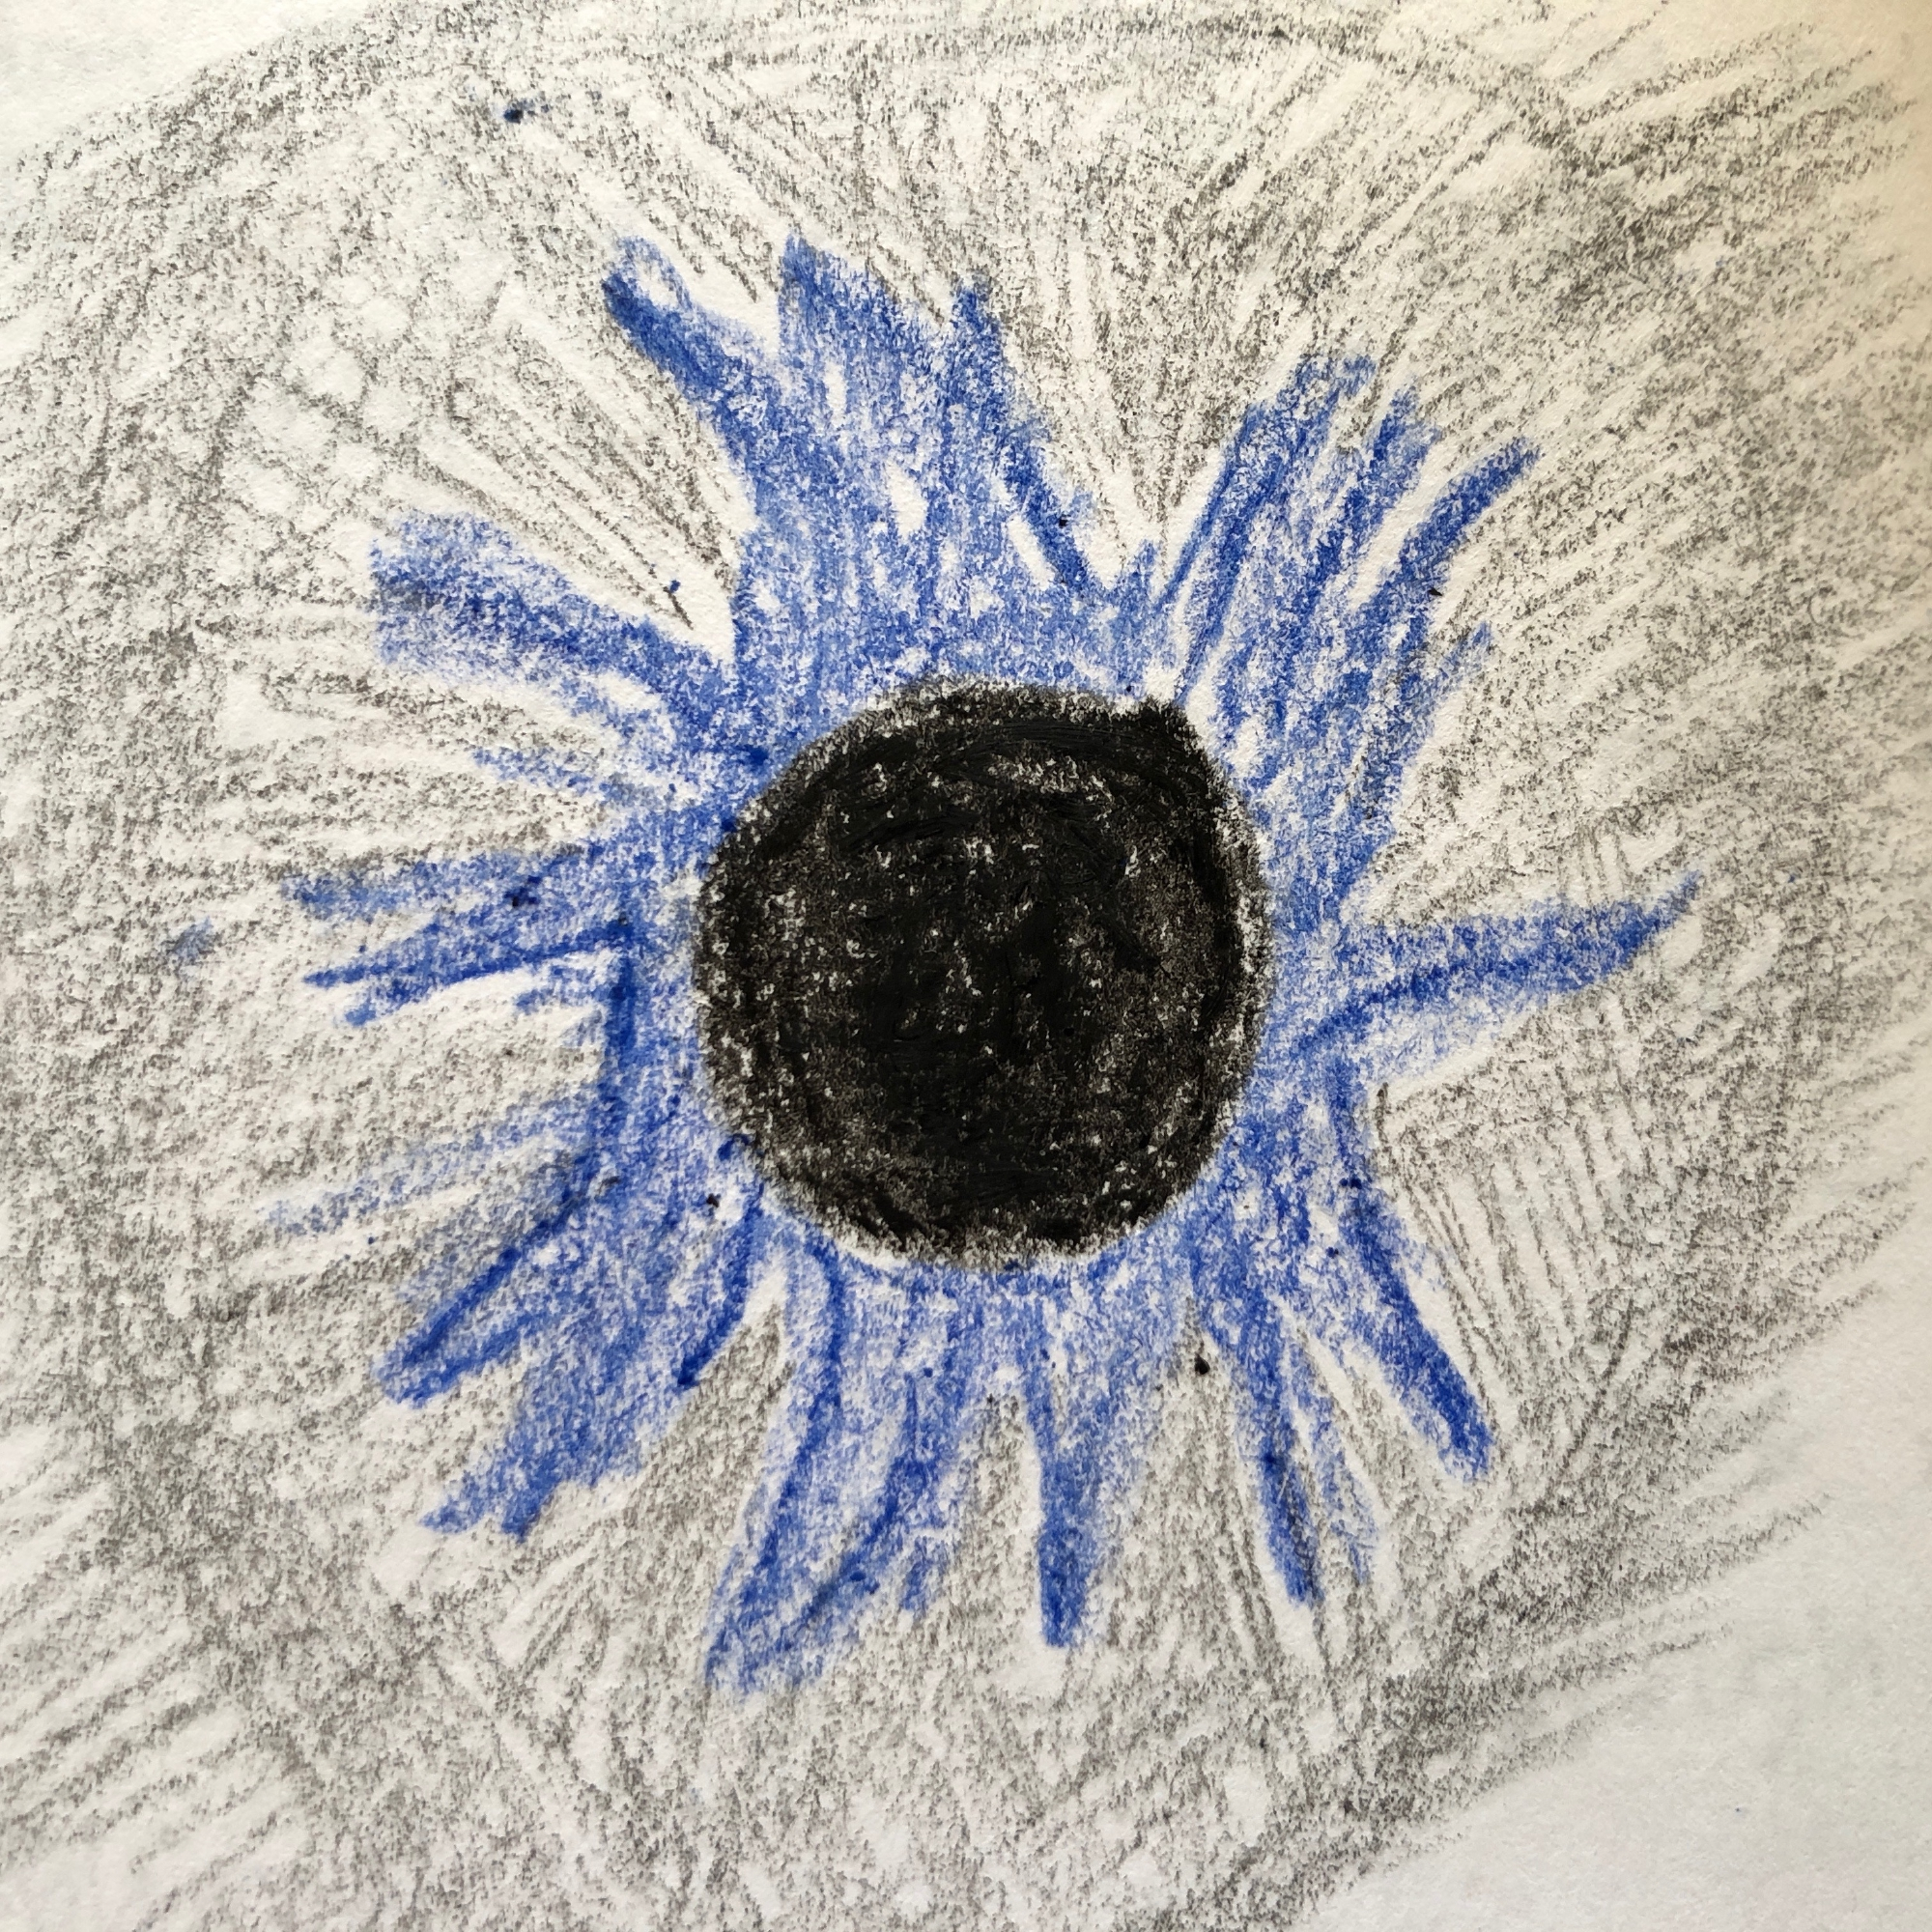 my drawing of the eclipse